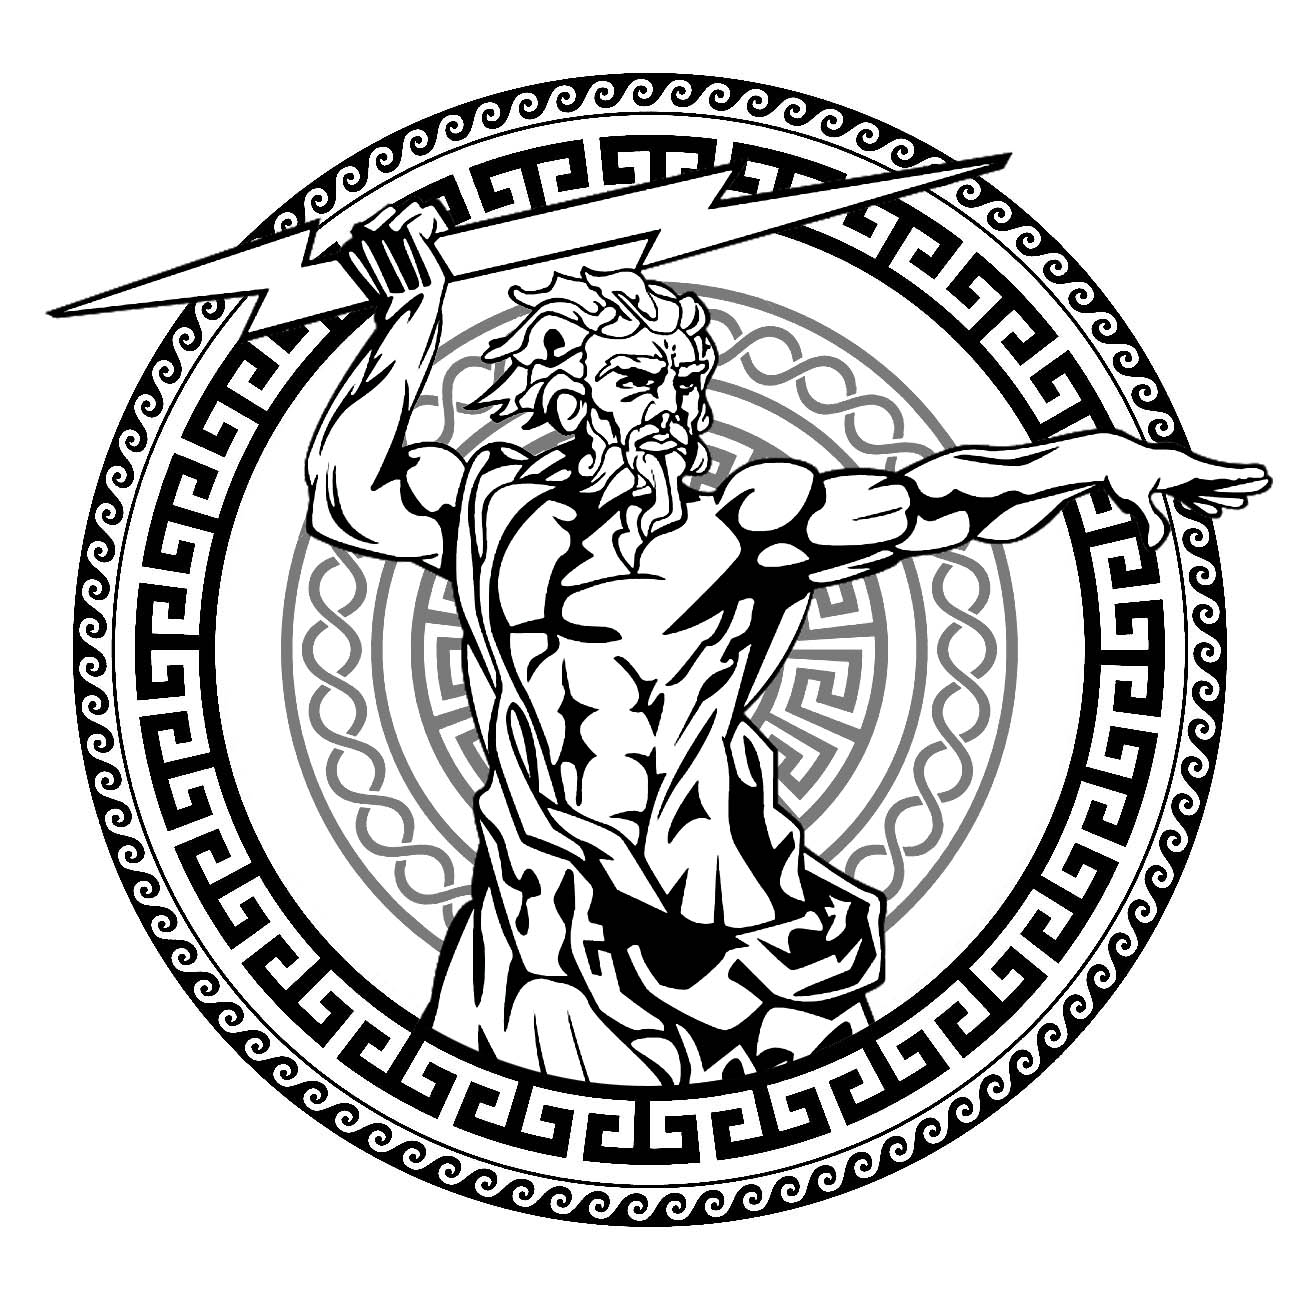 Zeus cercle greek circle - Ancient Greece Adult Coloring Pages